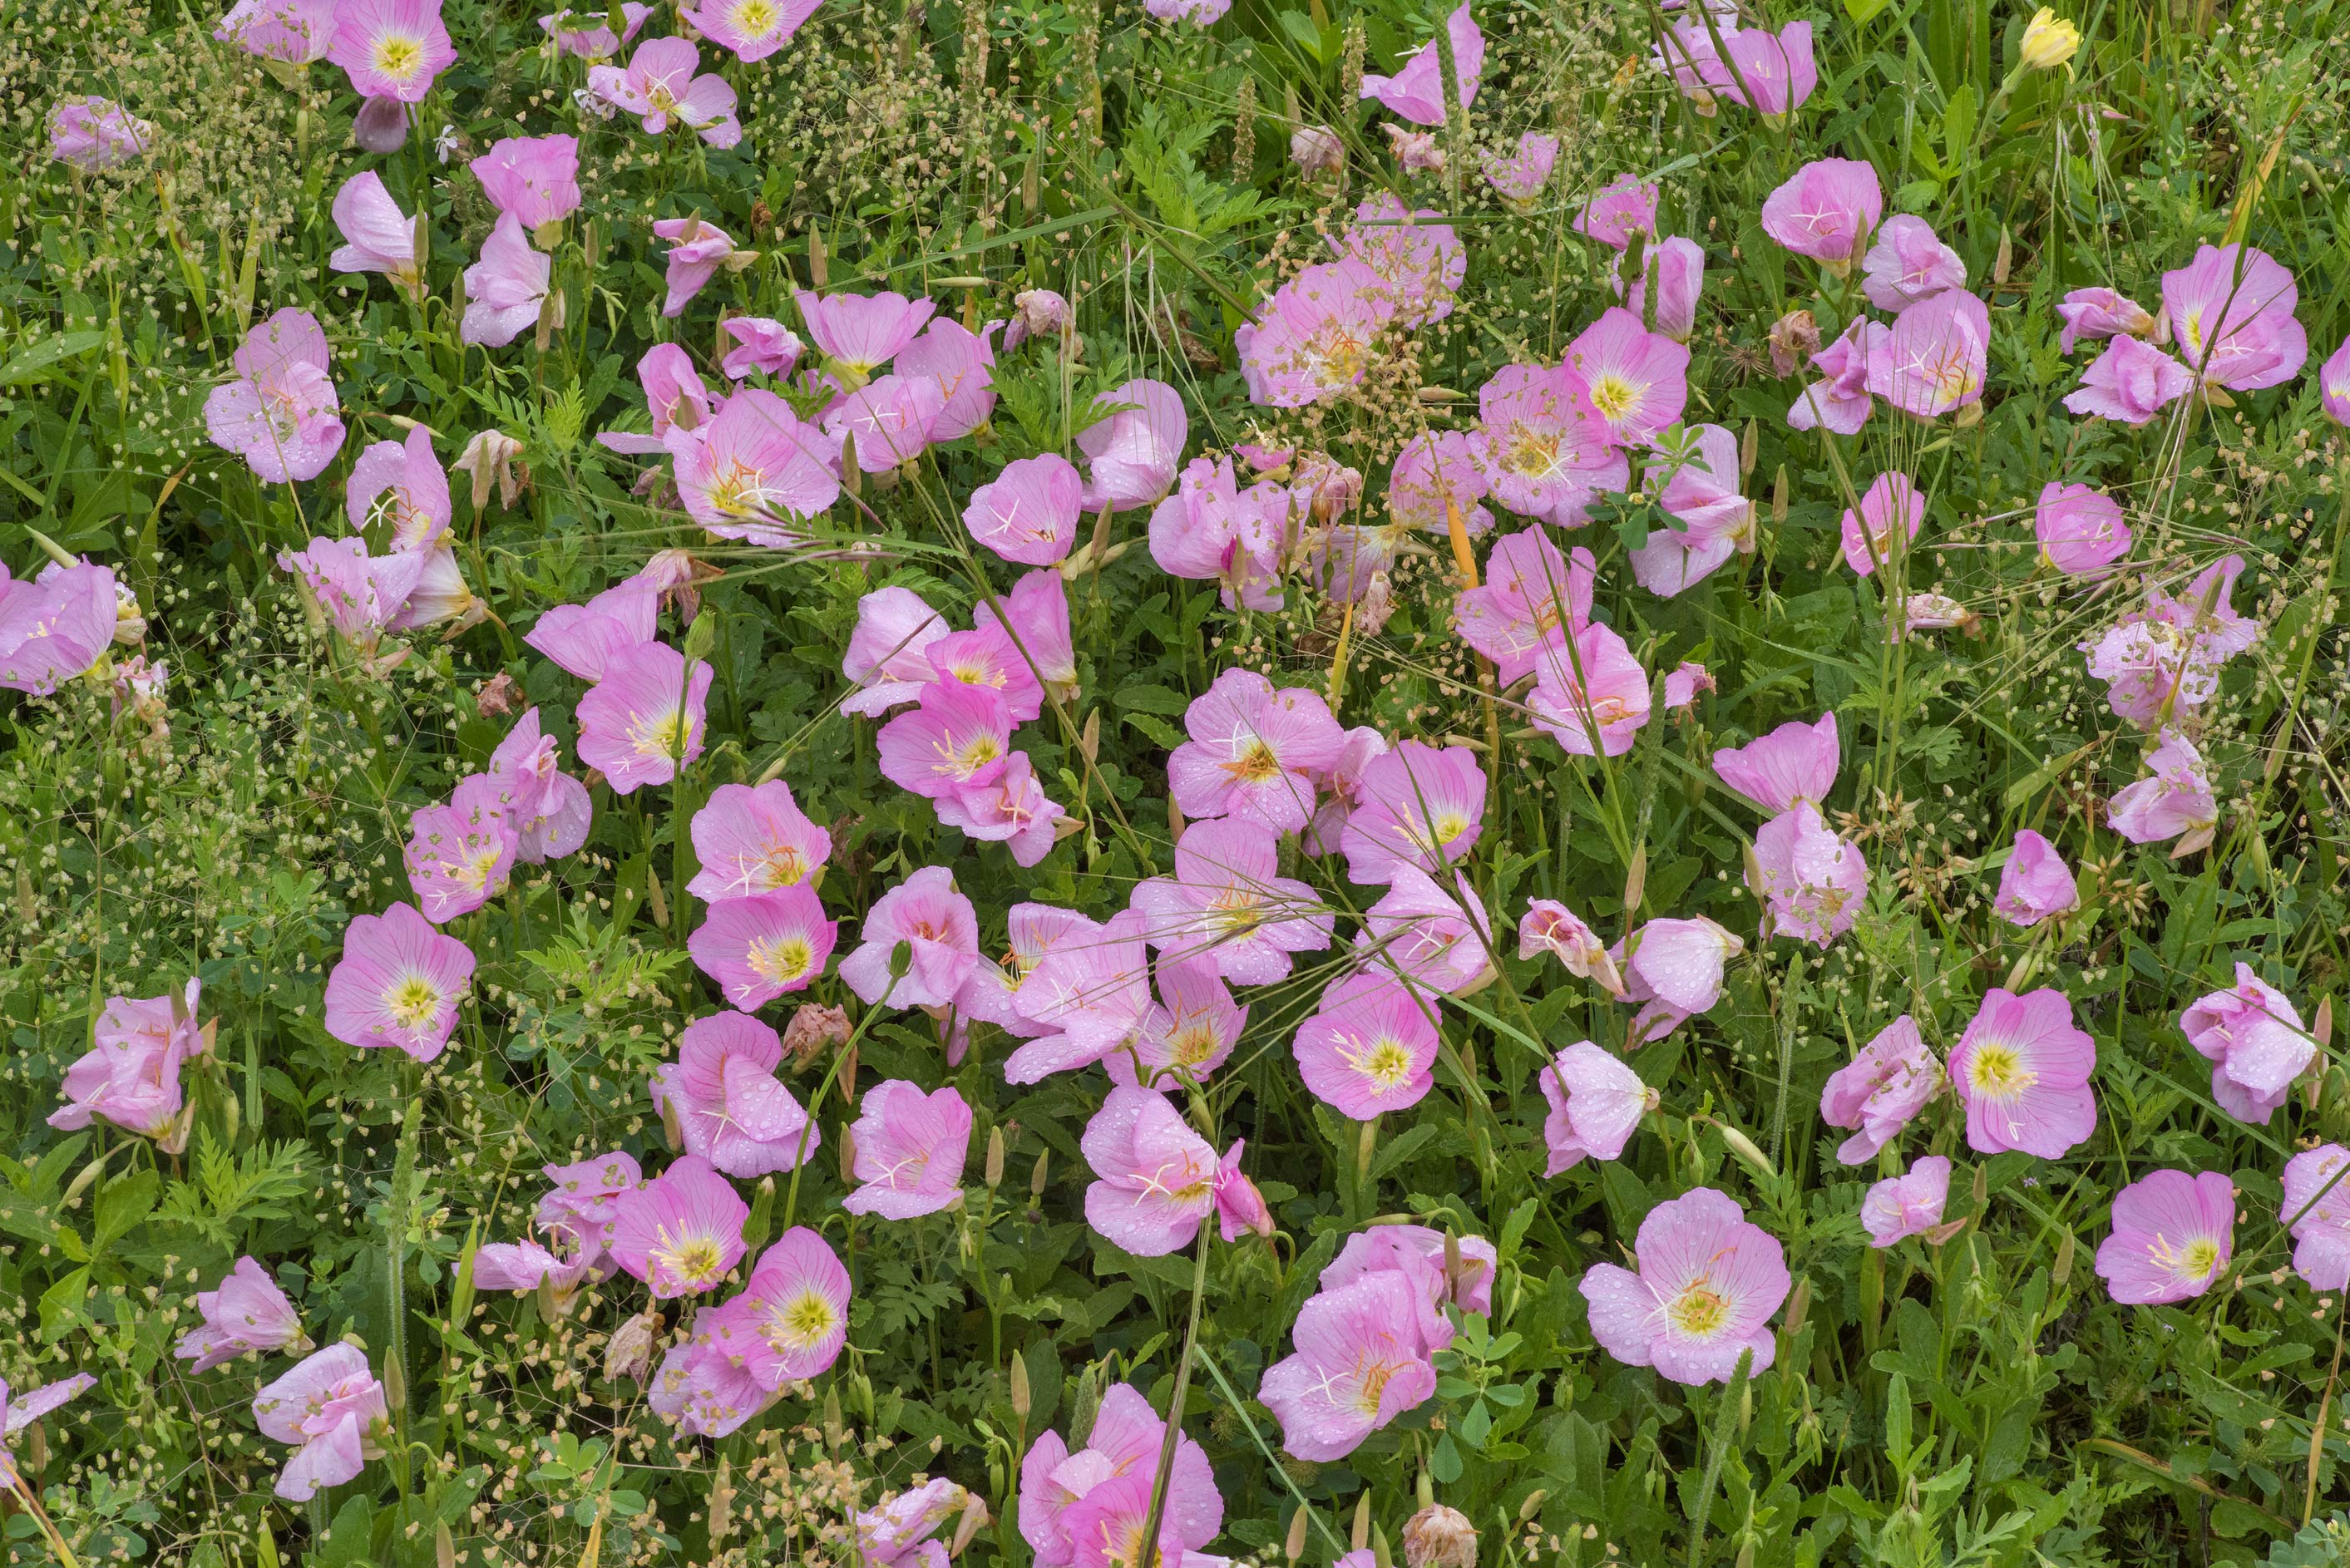 Showy evening primrose (Oenothera speciosa) on a...M University. College Station, Texas